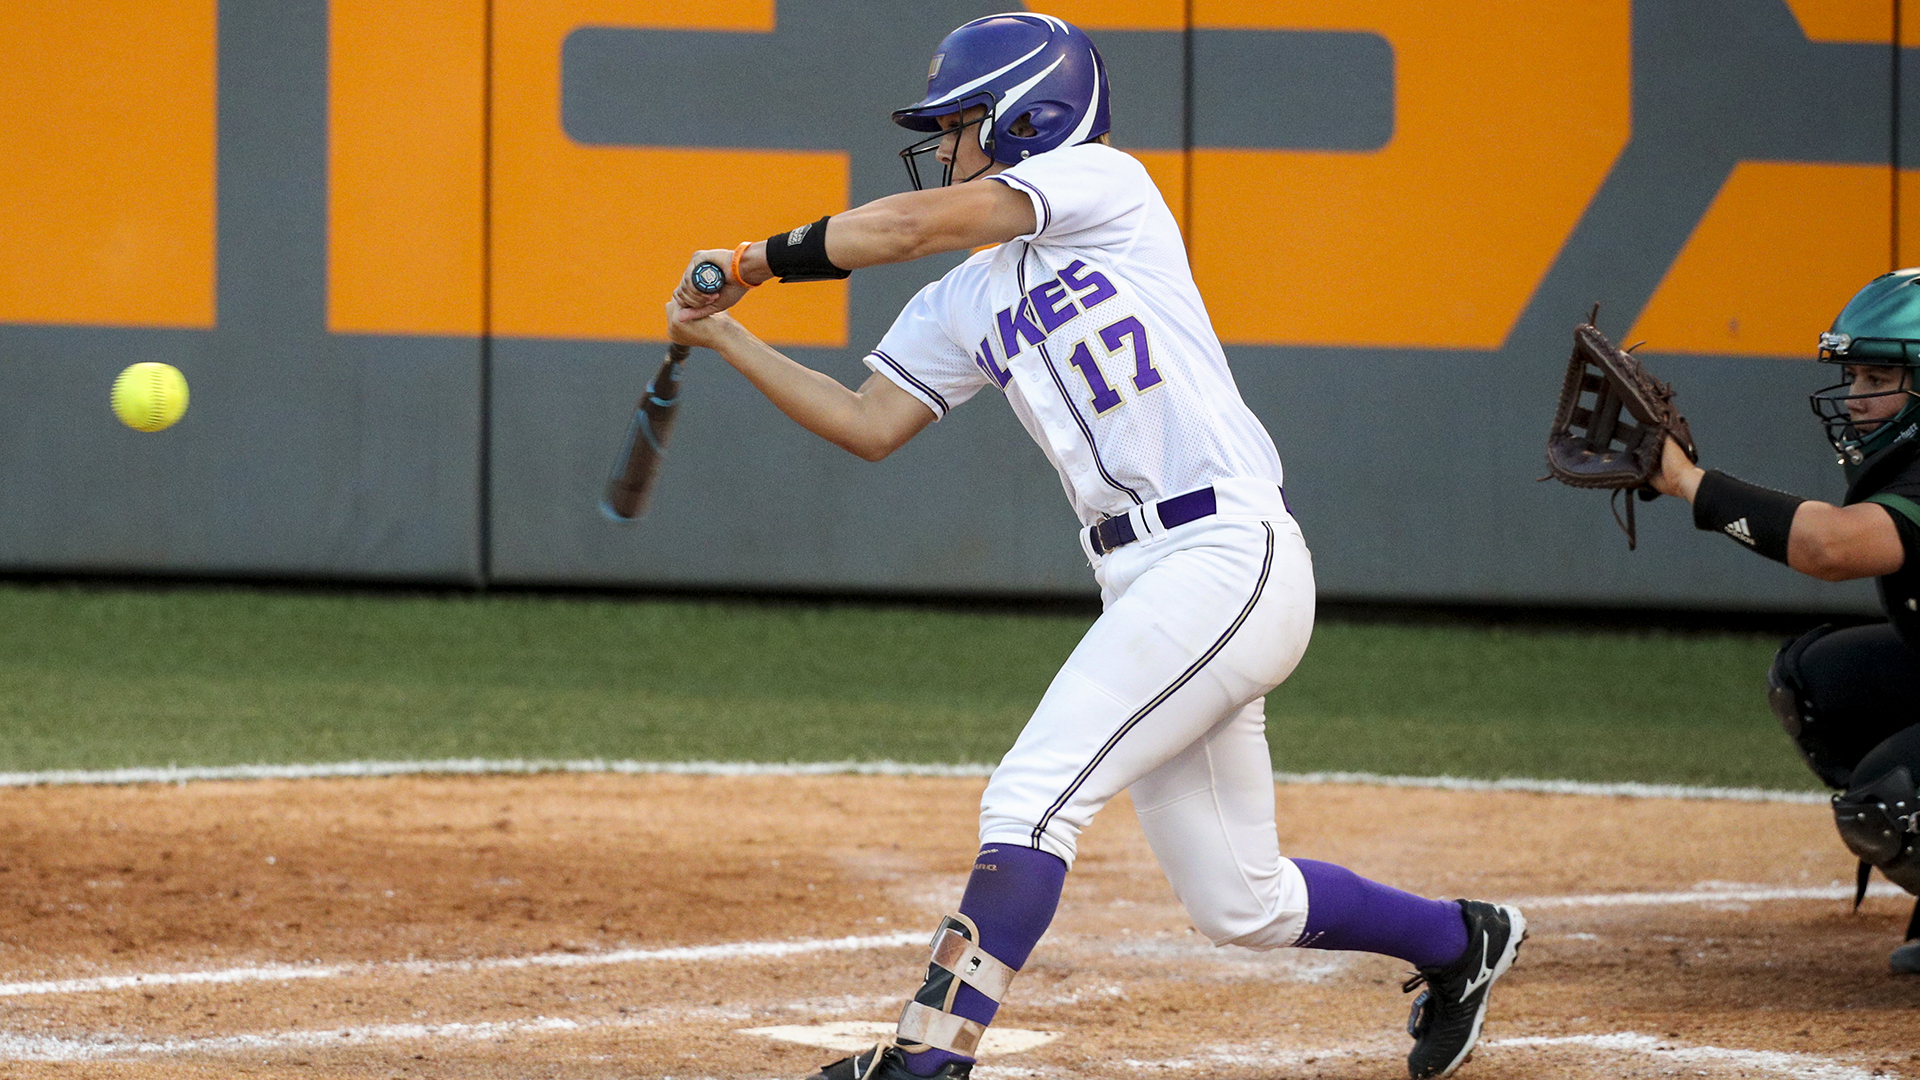 Softball: Dukes Open NCAA Play With 2-1 Victory over Ohio